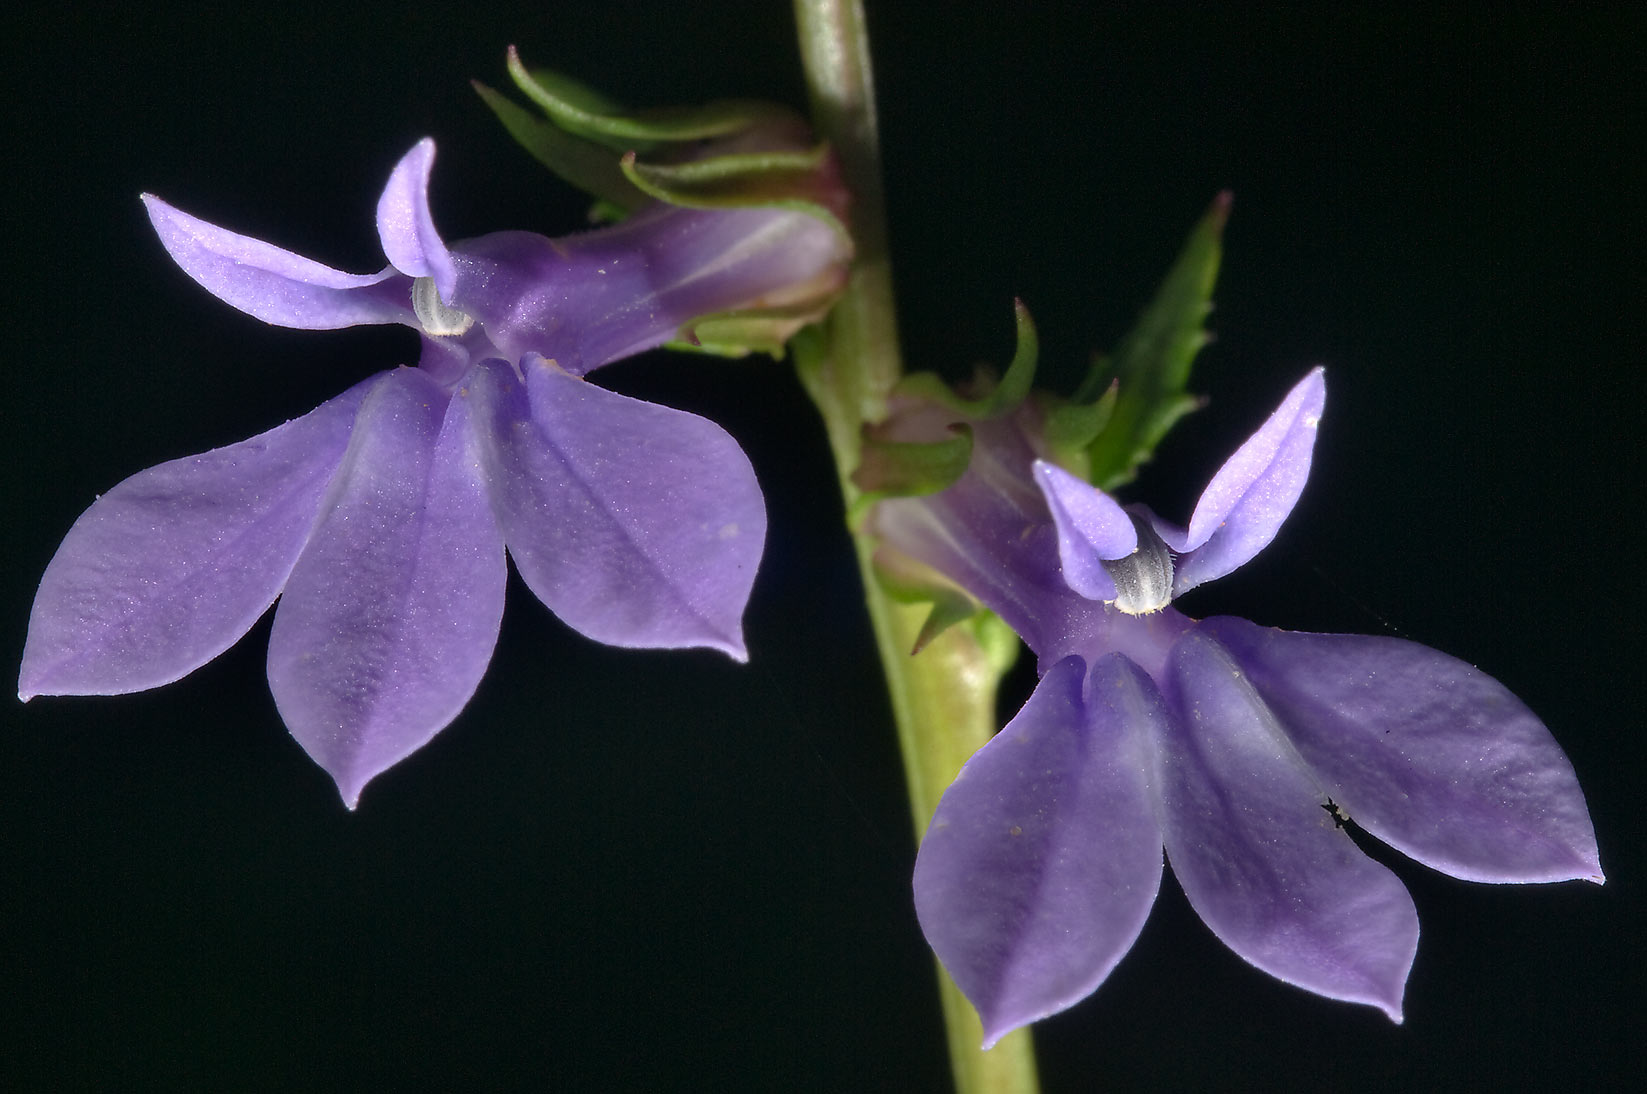 Flowers of purple dewdrop (Lobelia puberula) in...National Forest. Richards, Texas